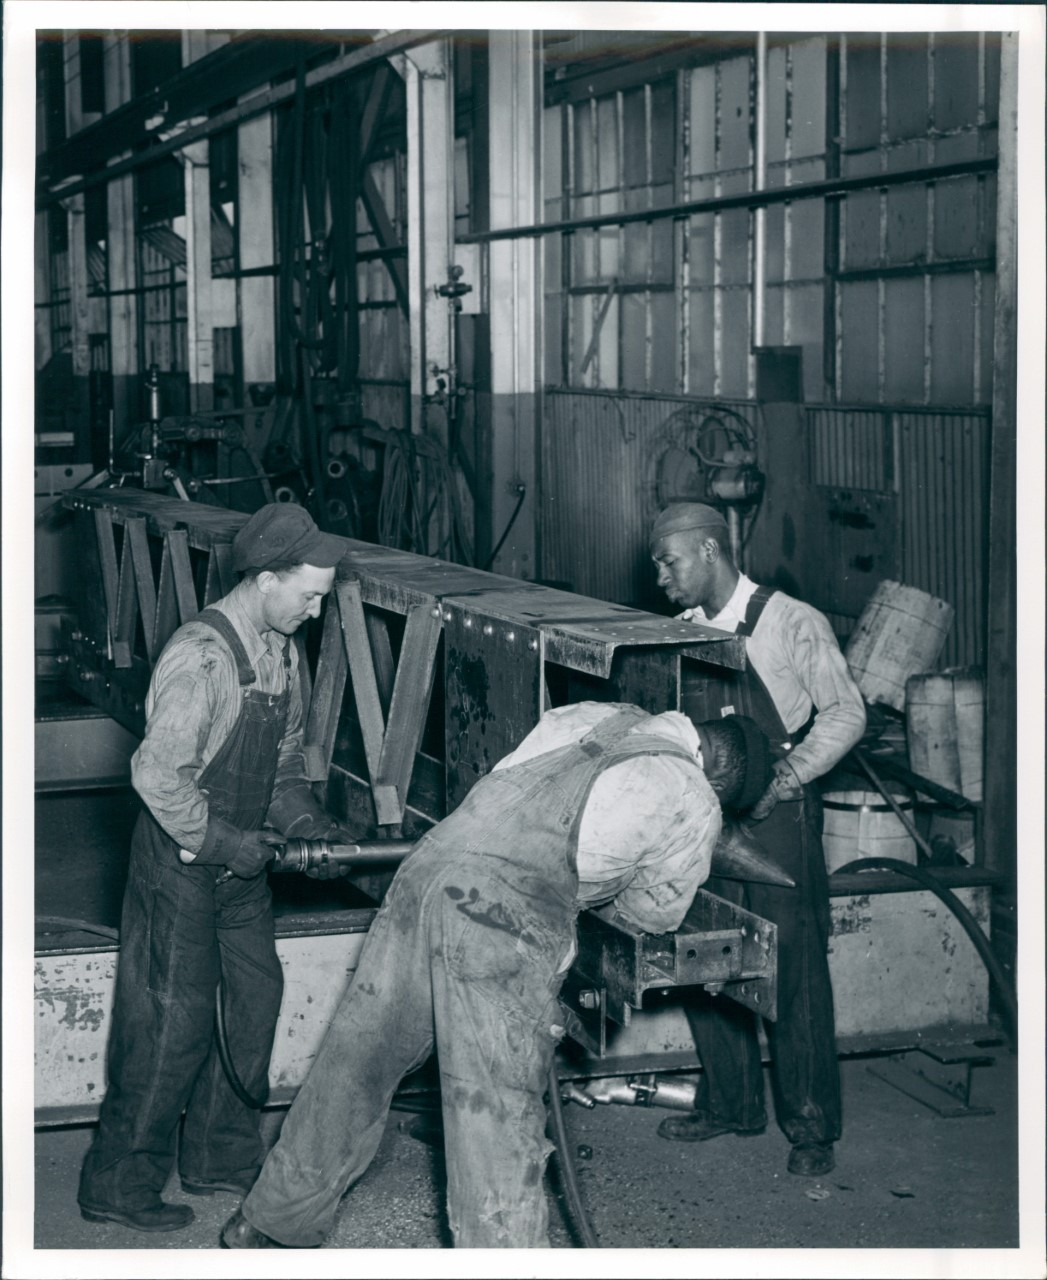 O'Neal Industries has employed Birminghamians for 100 years. Photo courtesy of O'Neal Industries